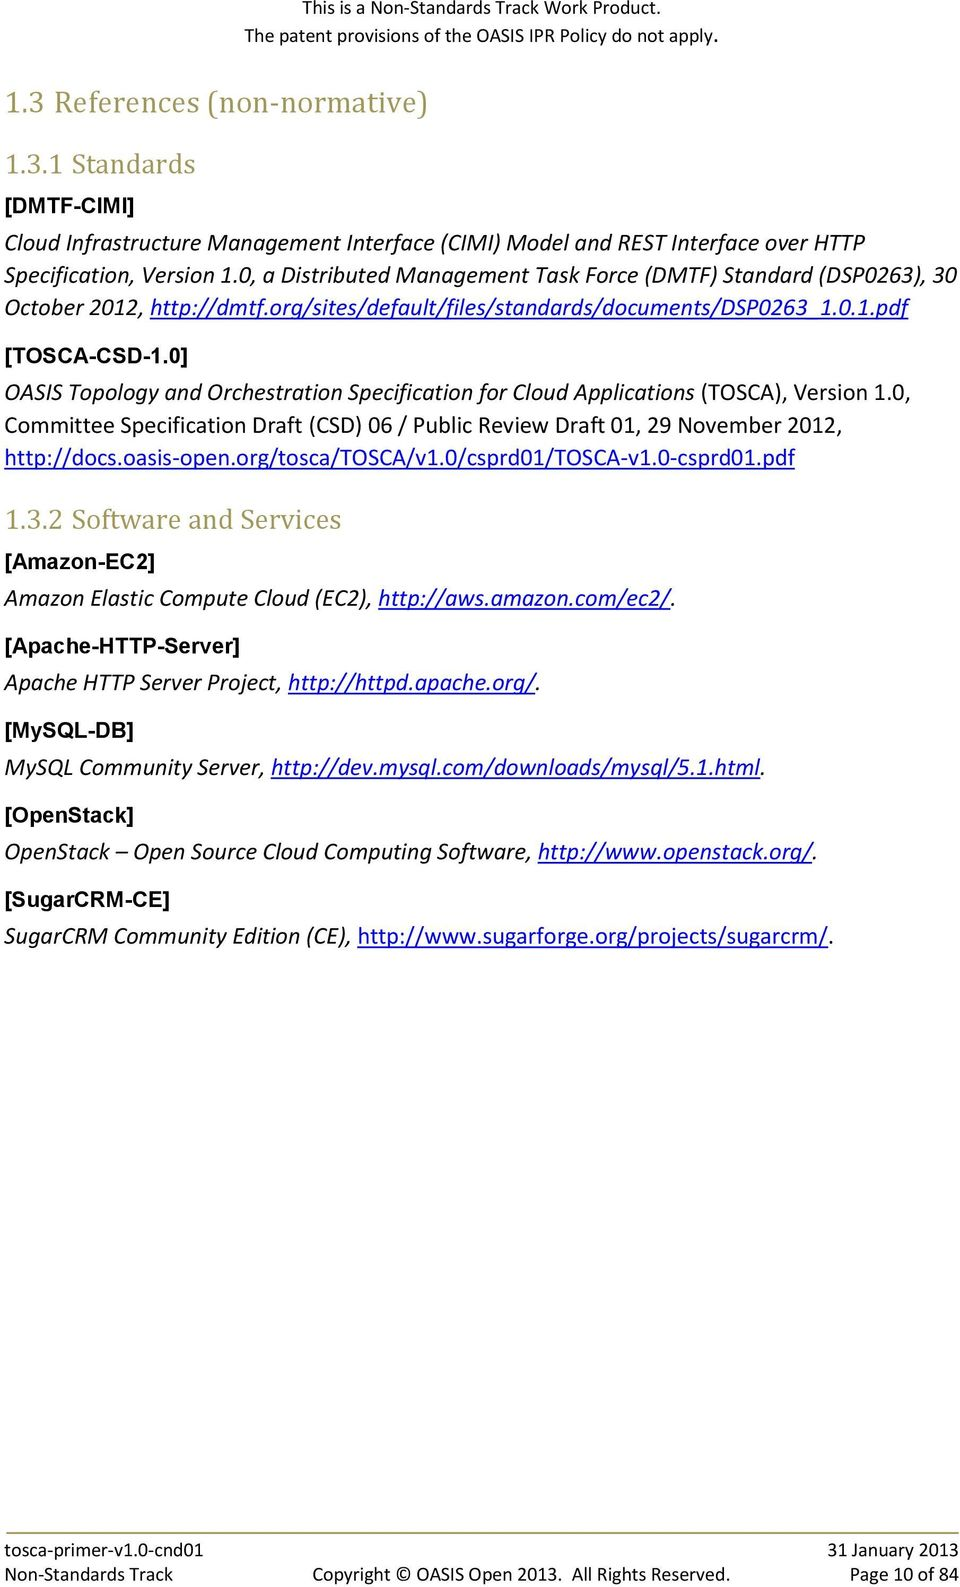 0] OASIS Topology and Orchestration Specification for Cloud Applications (TOSCA), Version 1.0, Committee Specification Draft (CSD) 06 / Public Review Draft 01, 29 November 2012, http://docs.